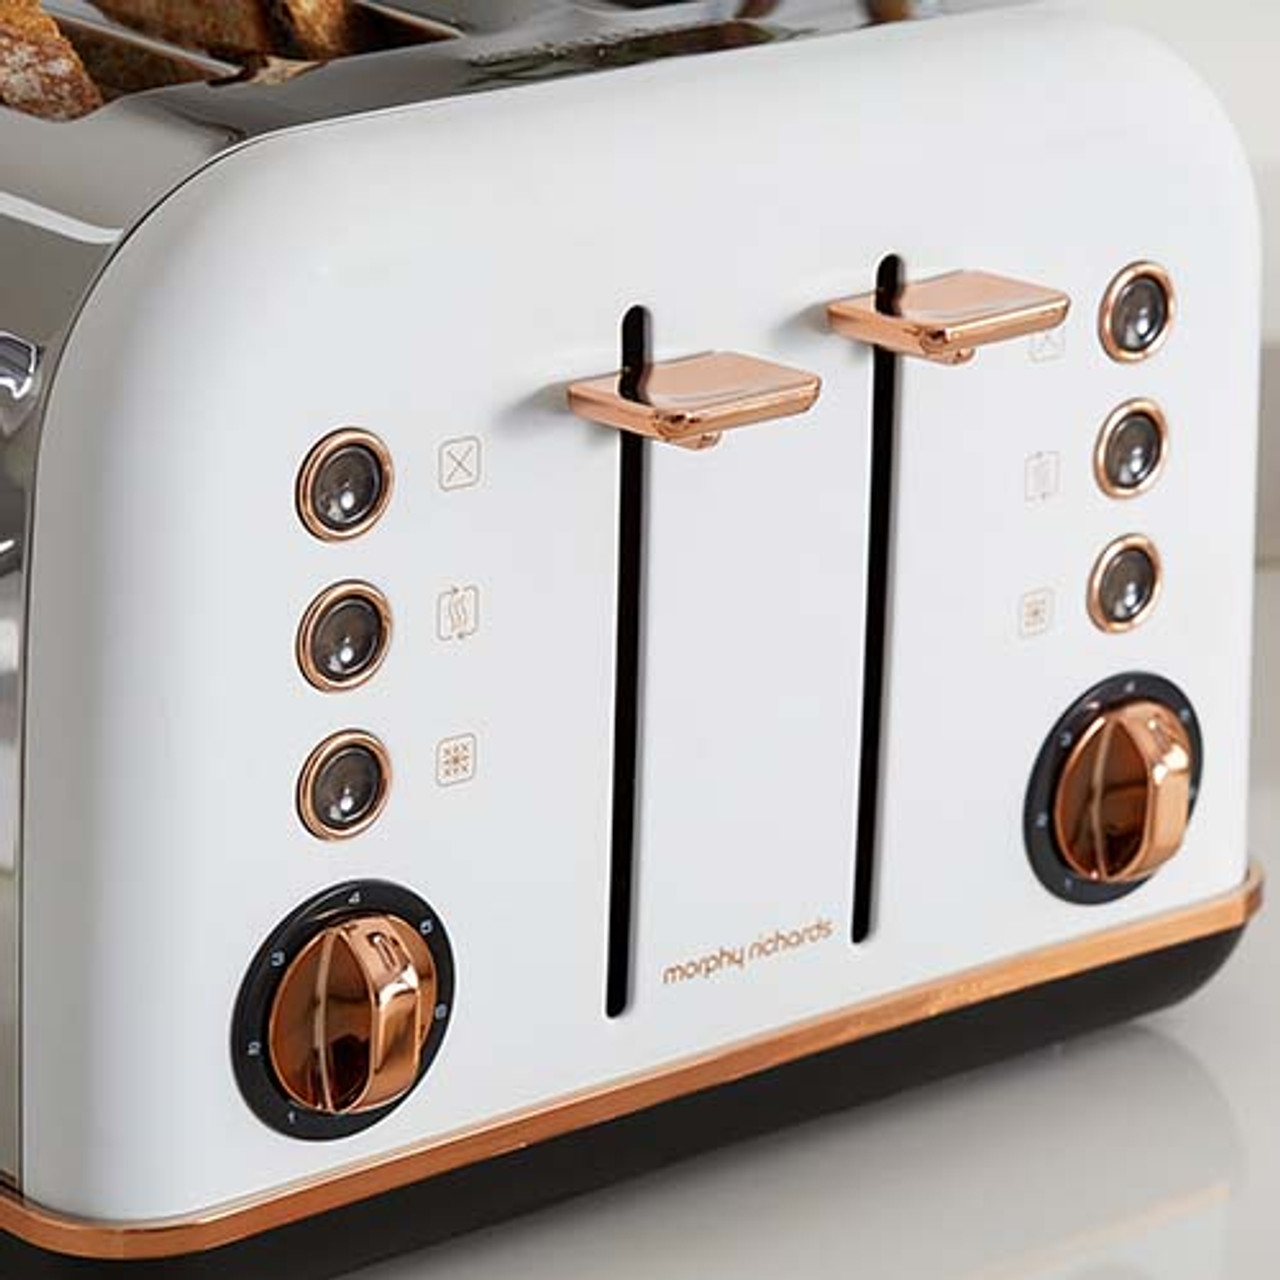 Morphy Richards 202108 Accents Rose 1880W 4 Slice Toaster - Gold White